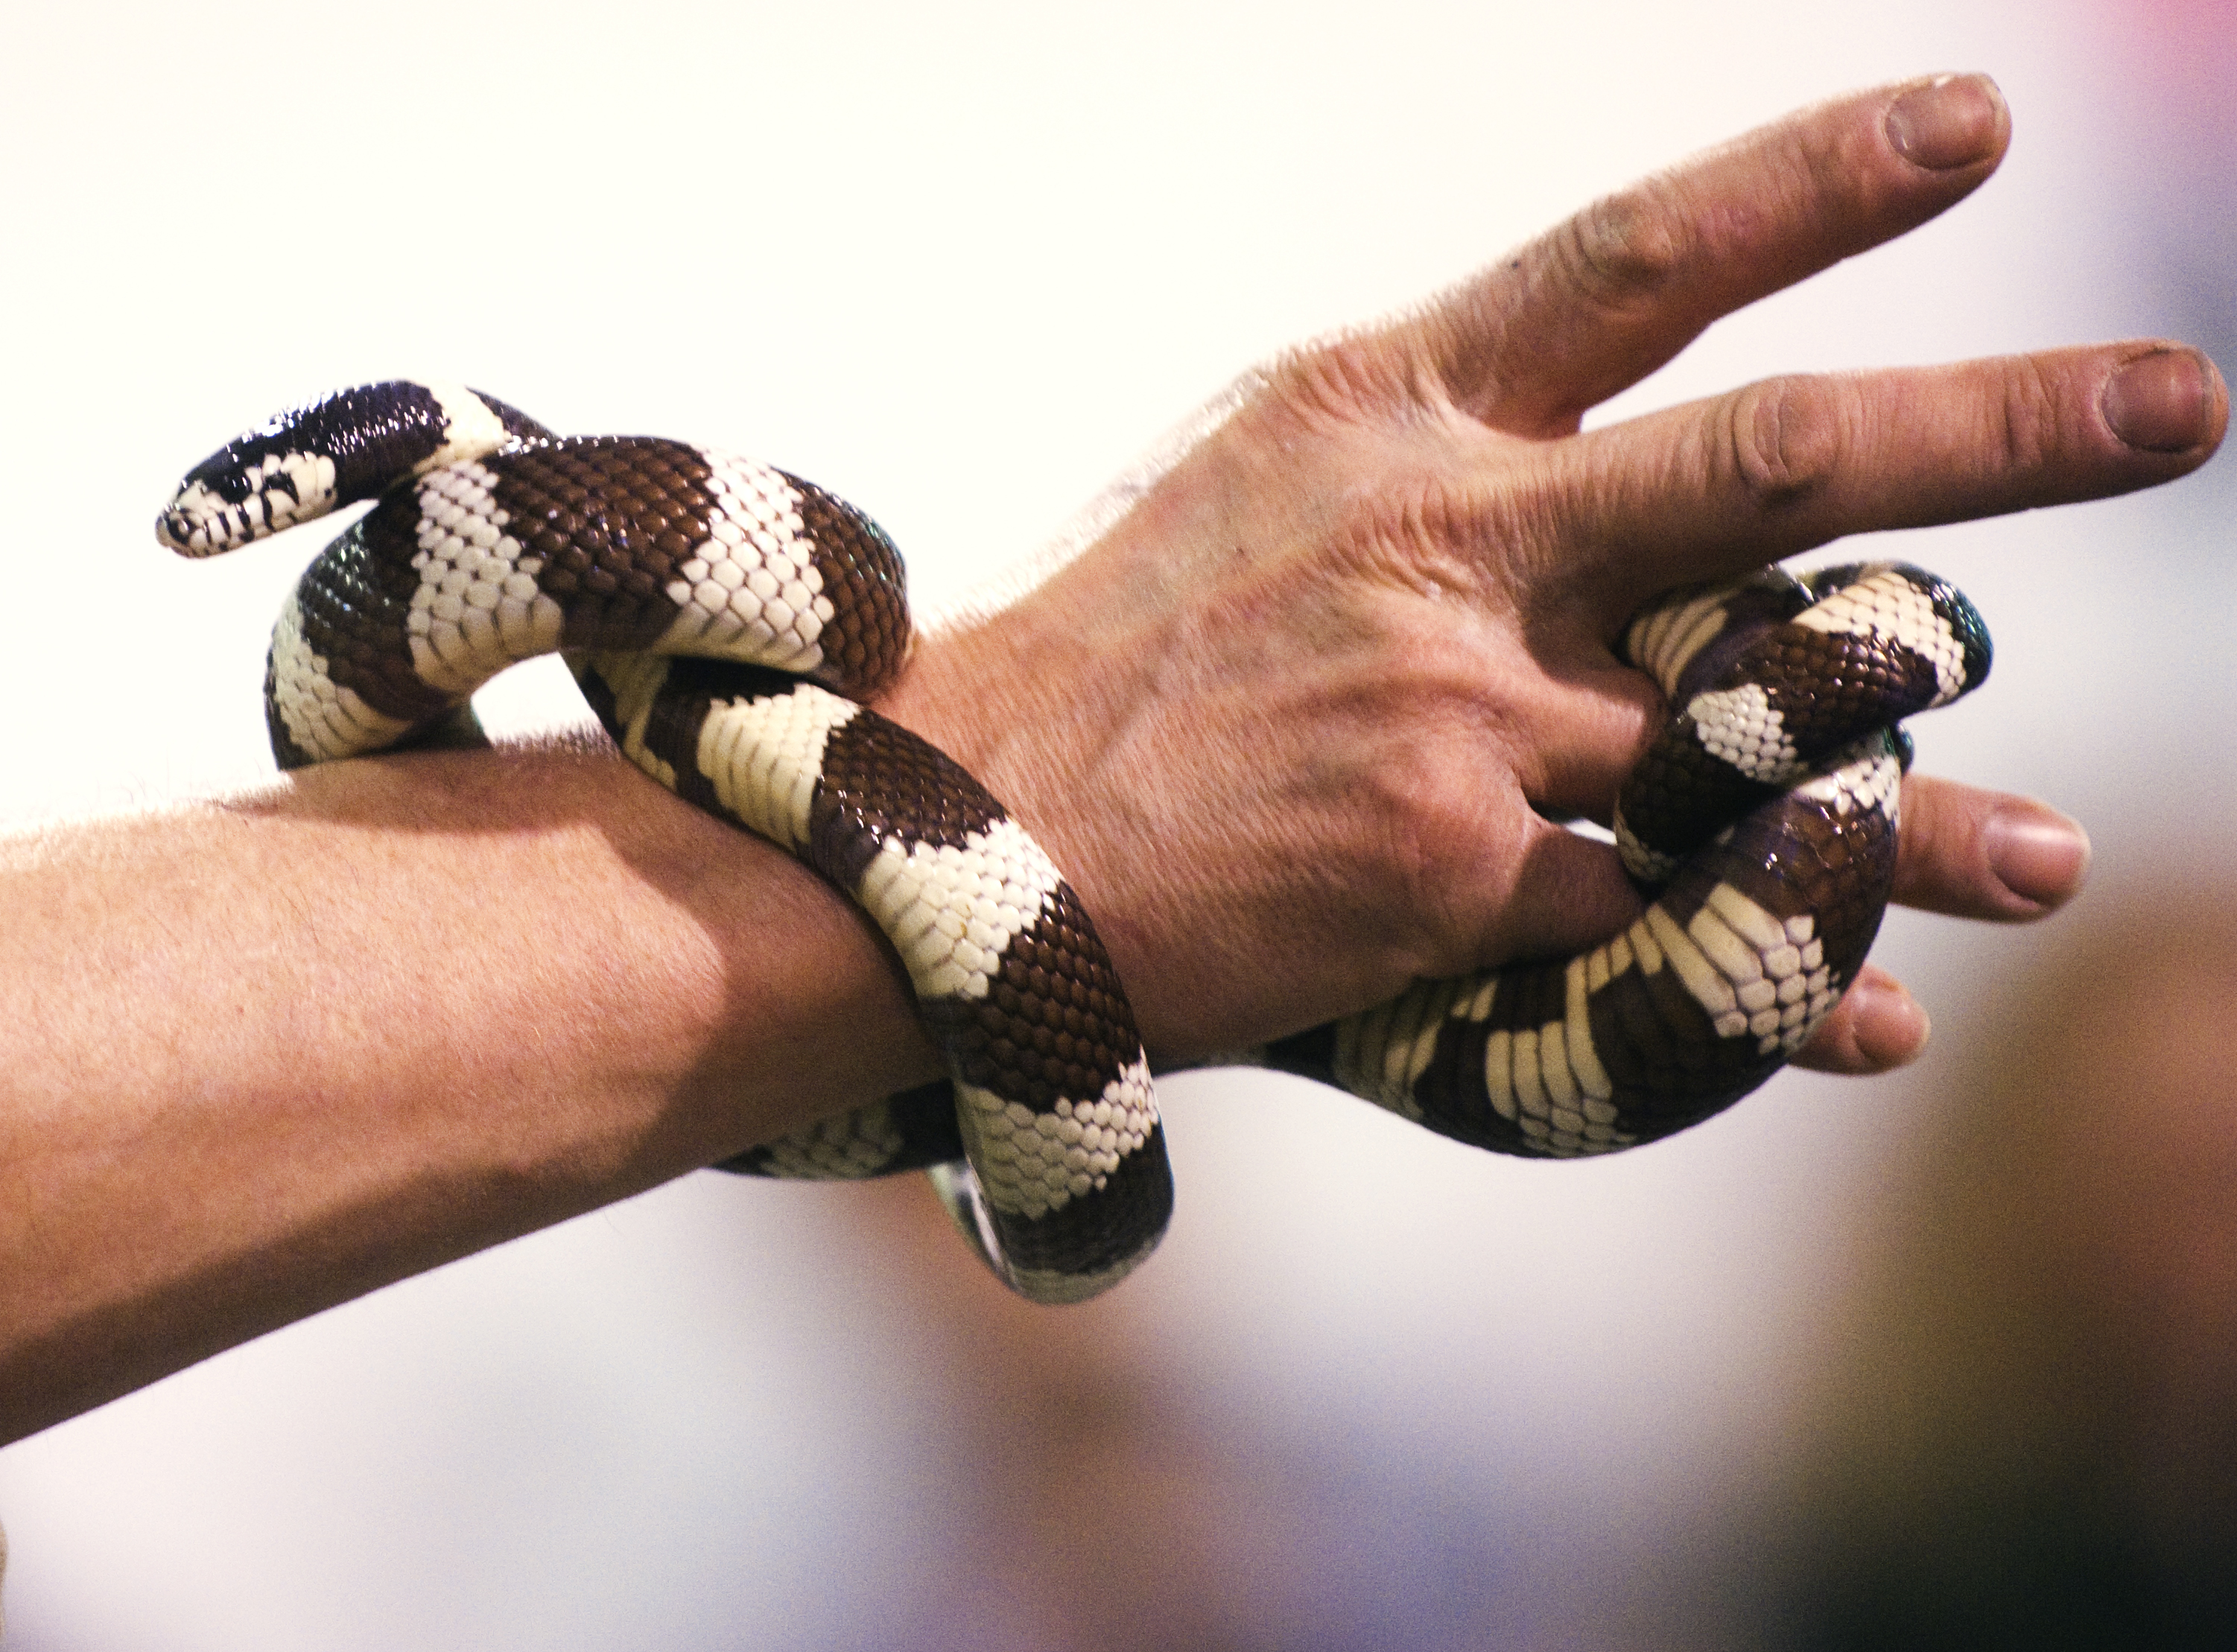 Pa. reptile sanctuary saves snake from eating itself: 'He must have swallowed almost half of his body' - pennlive.com